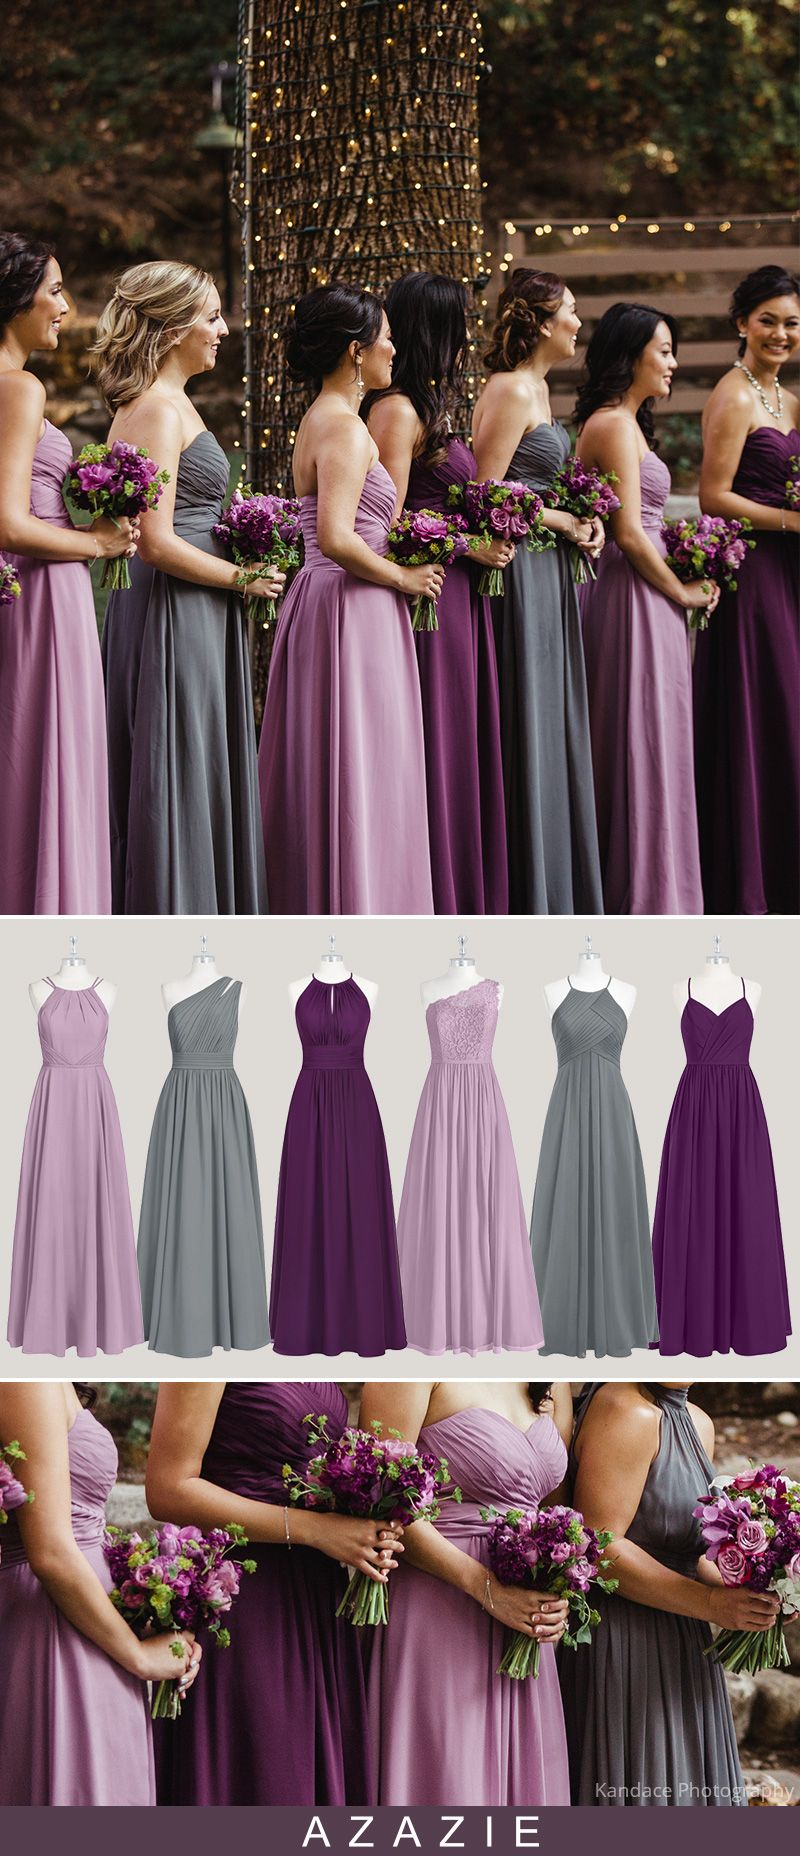 Purple And Grey Mismatched Bridesmaid Dresses Wedding Bridesmaid Dresses Wedding Bridesmaids Purple Bridesmaid Dresses